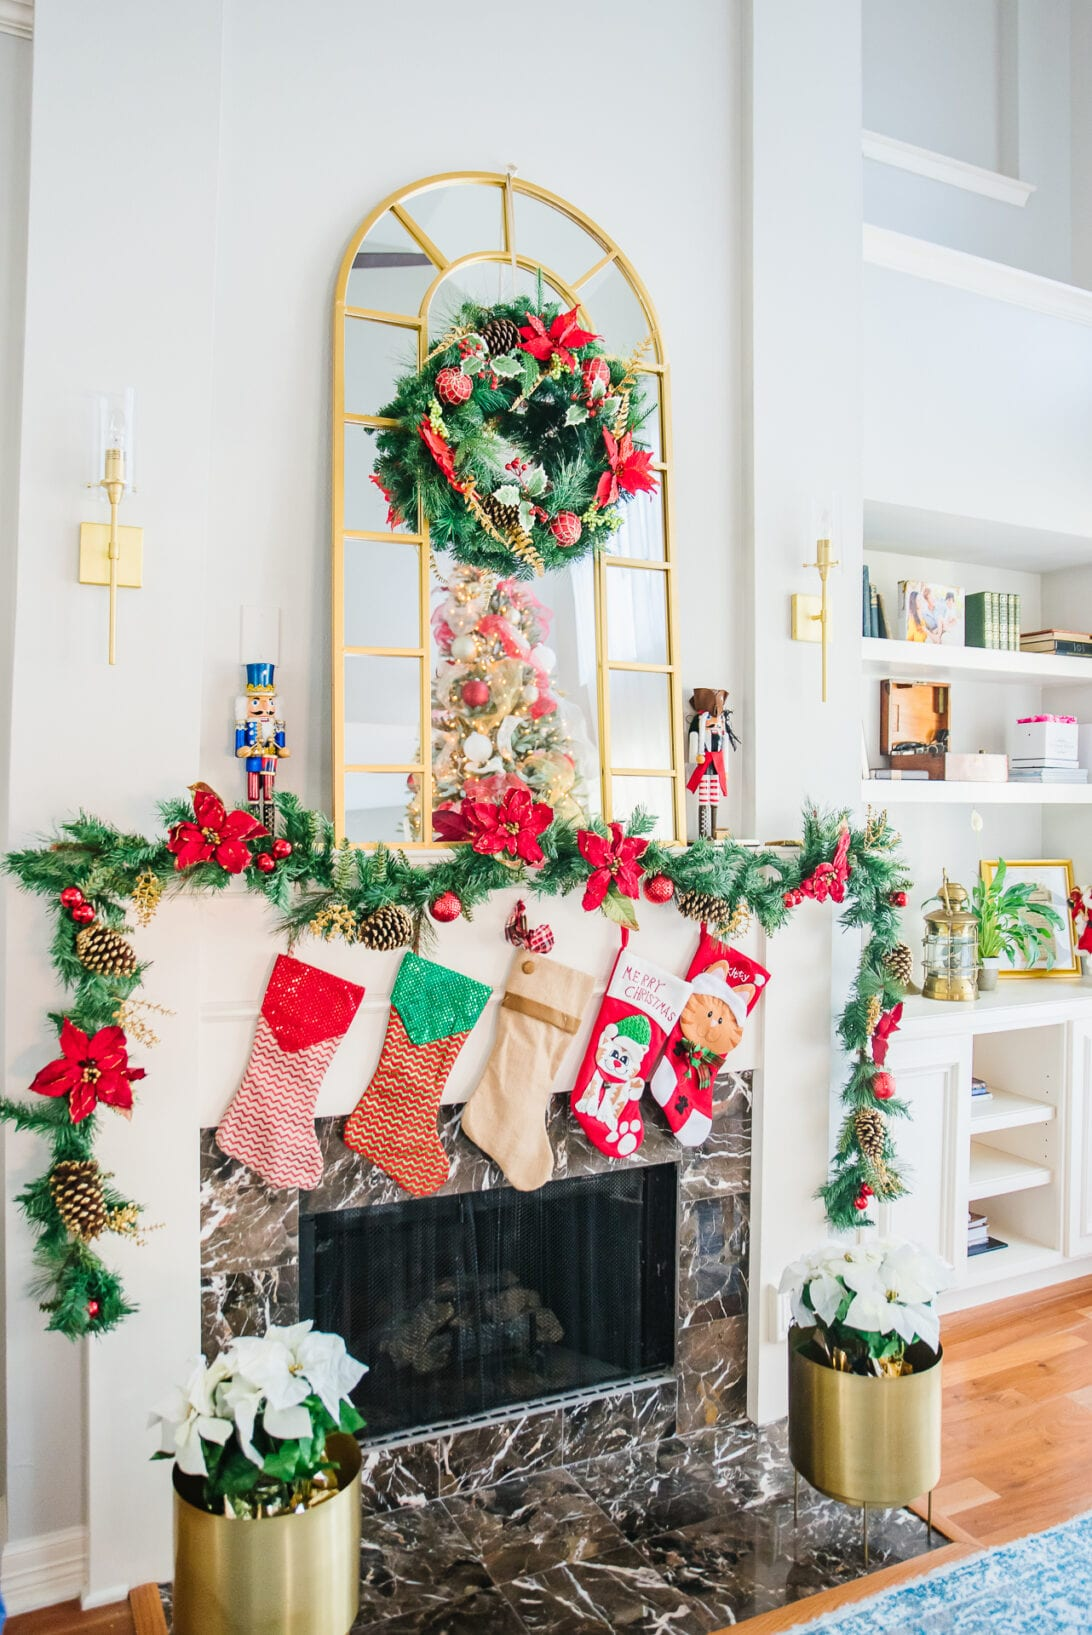 Christmas fireplace, How to decorate your fireplace for Christmas, Christmas stocking, poinsettias, red Christmas wreath, red Christmas decor